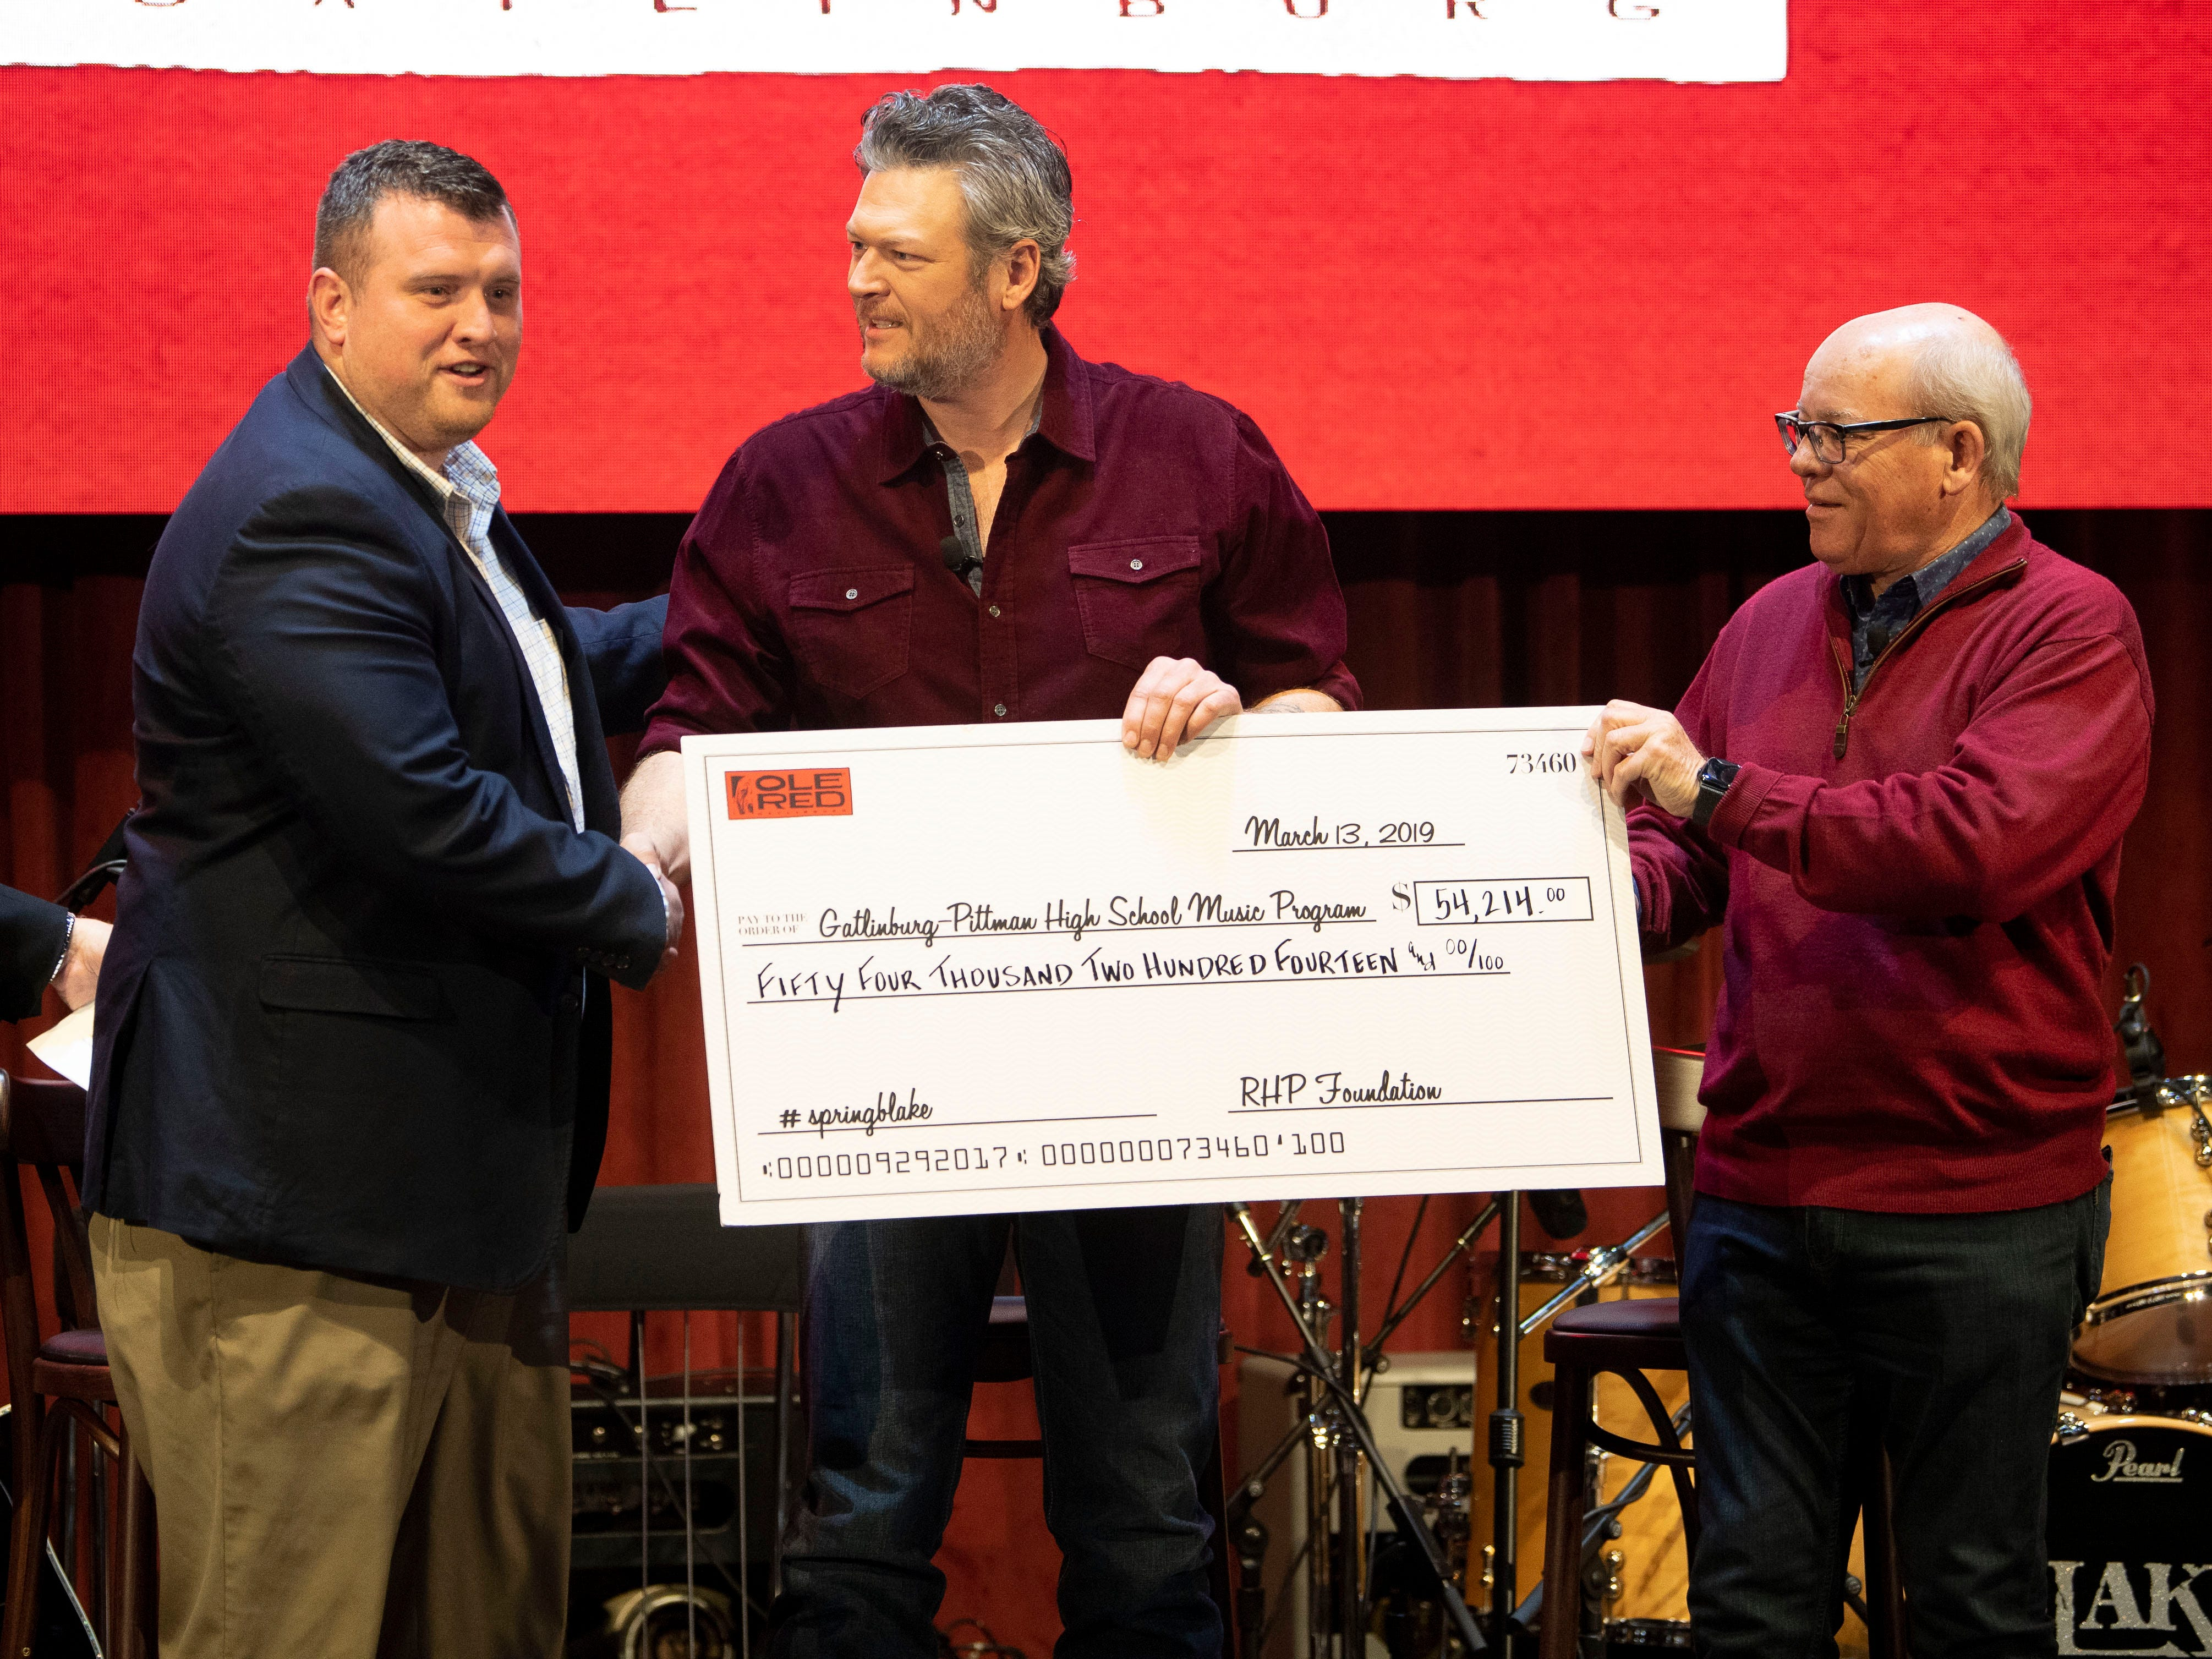 Gatlinburg-Pittman High School assistant principal AJ Bennett, left, accepts a check from Black Shelton and Ryman Hospitality Properties CEO Colin Reed for for $54,214 to benefit the music program at Gatlinburg-Pittman during a news conference for the grand opening of Ole Red Gatlinburg on Wednesday, March 13, 2019. The money was raised through auctioned tickets and donations for Shelton's grand opening concert at Ole Red Gatlinburg.